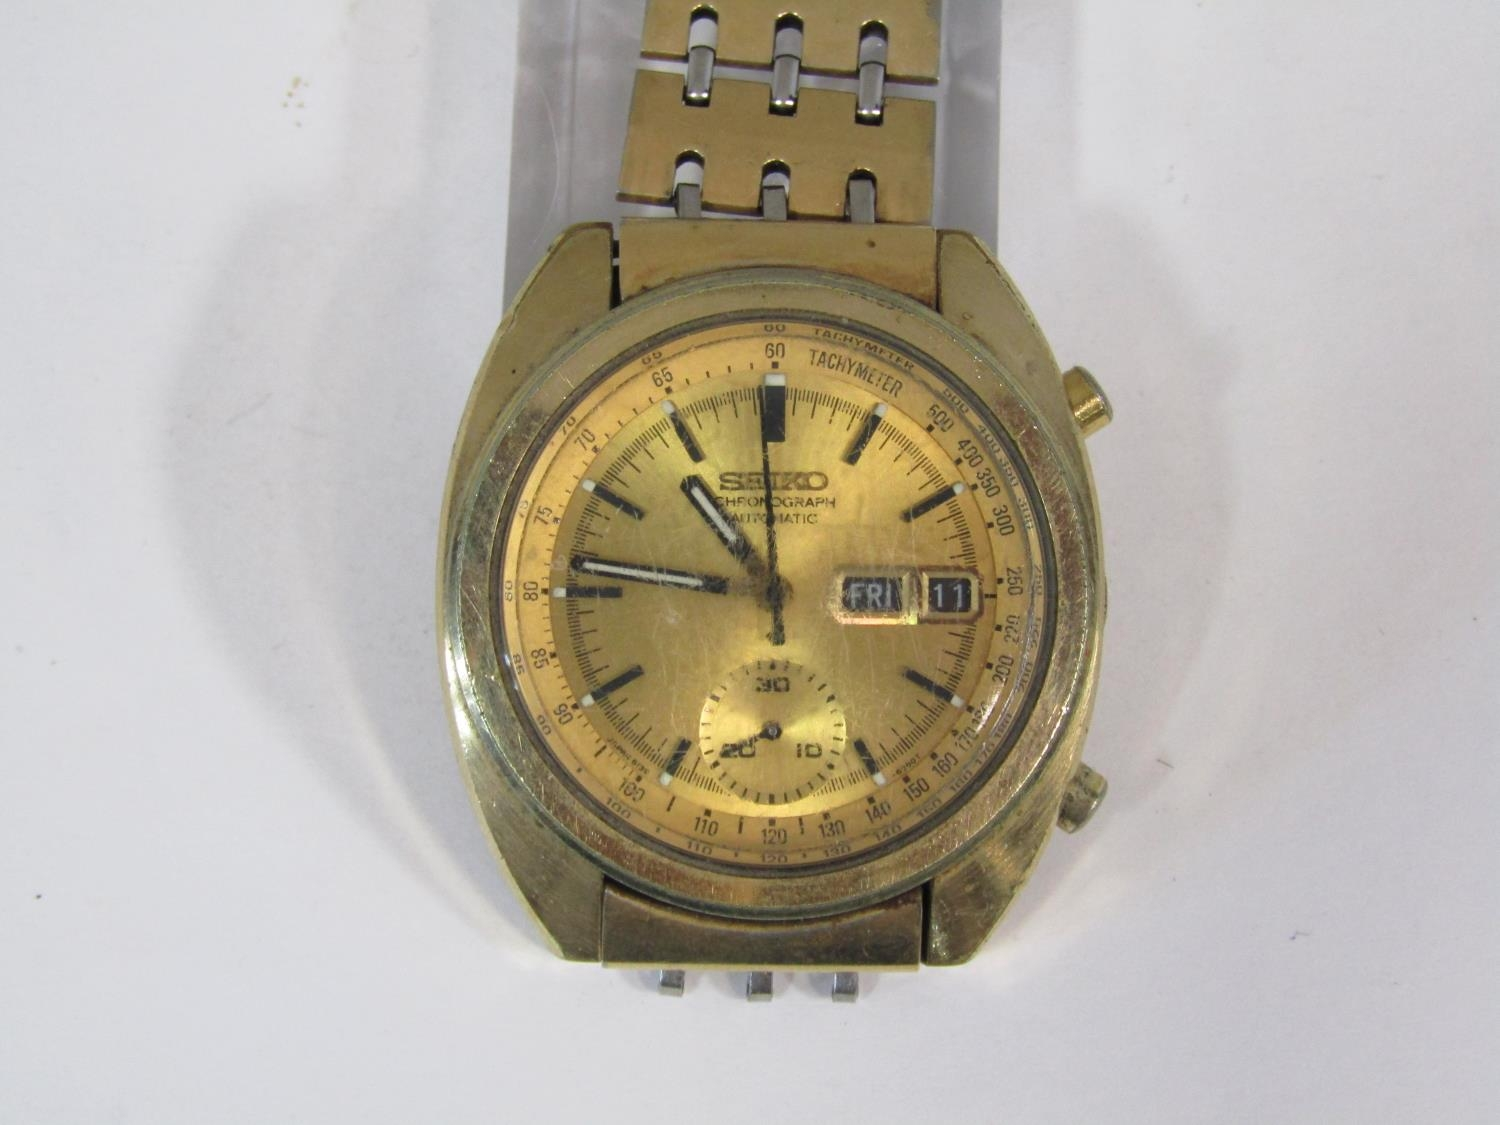 Vintage gent's Seiko chronograph automatic gold plated wristwatch, the gilt dial with black baton - Image 2 of 3